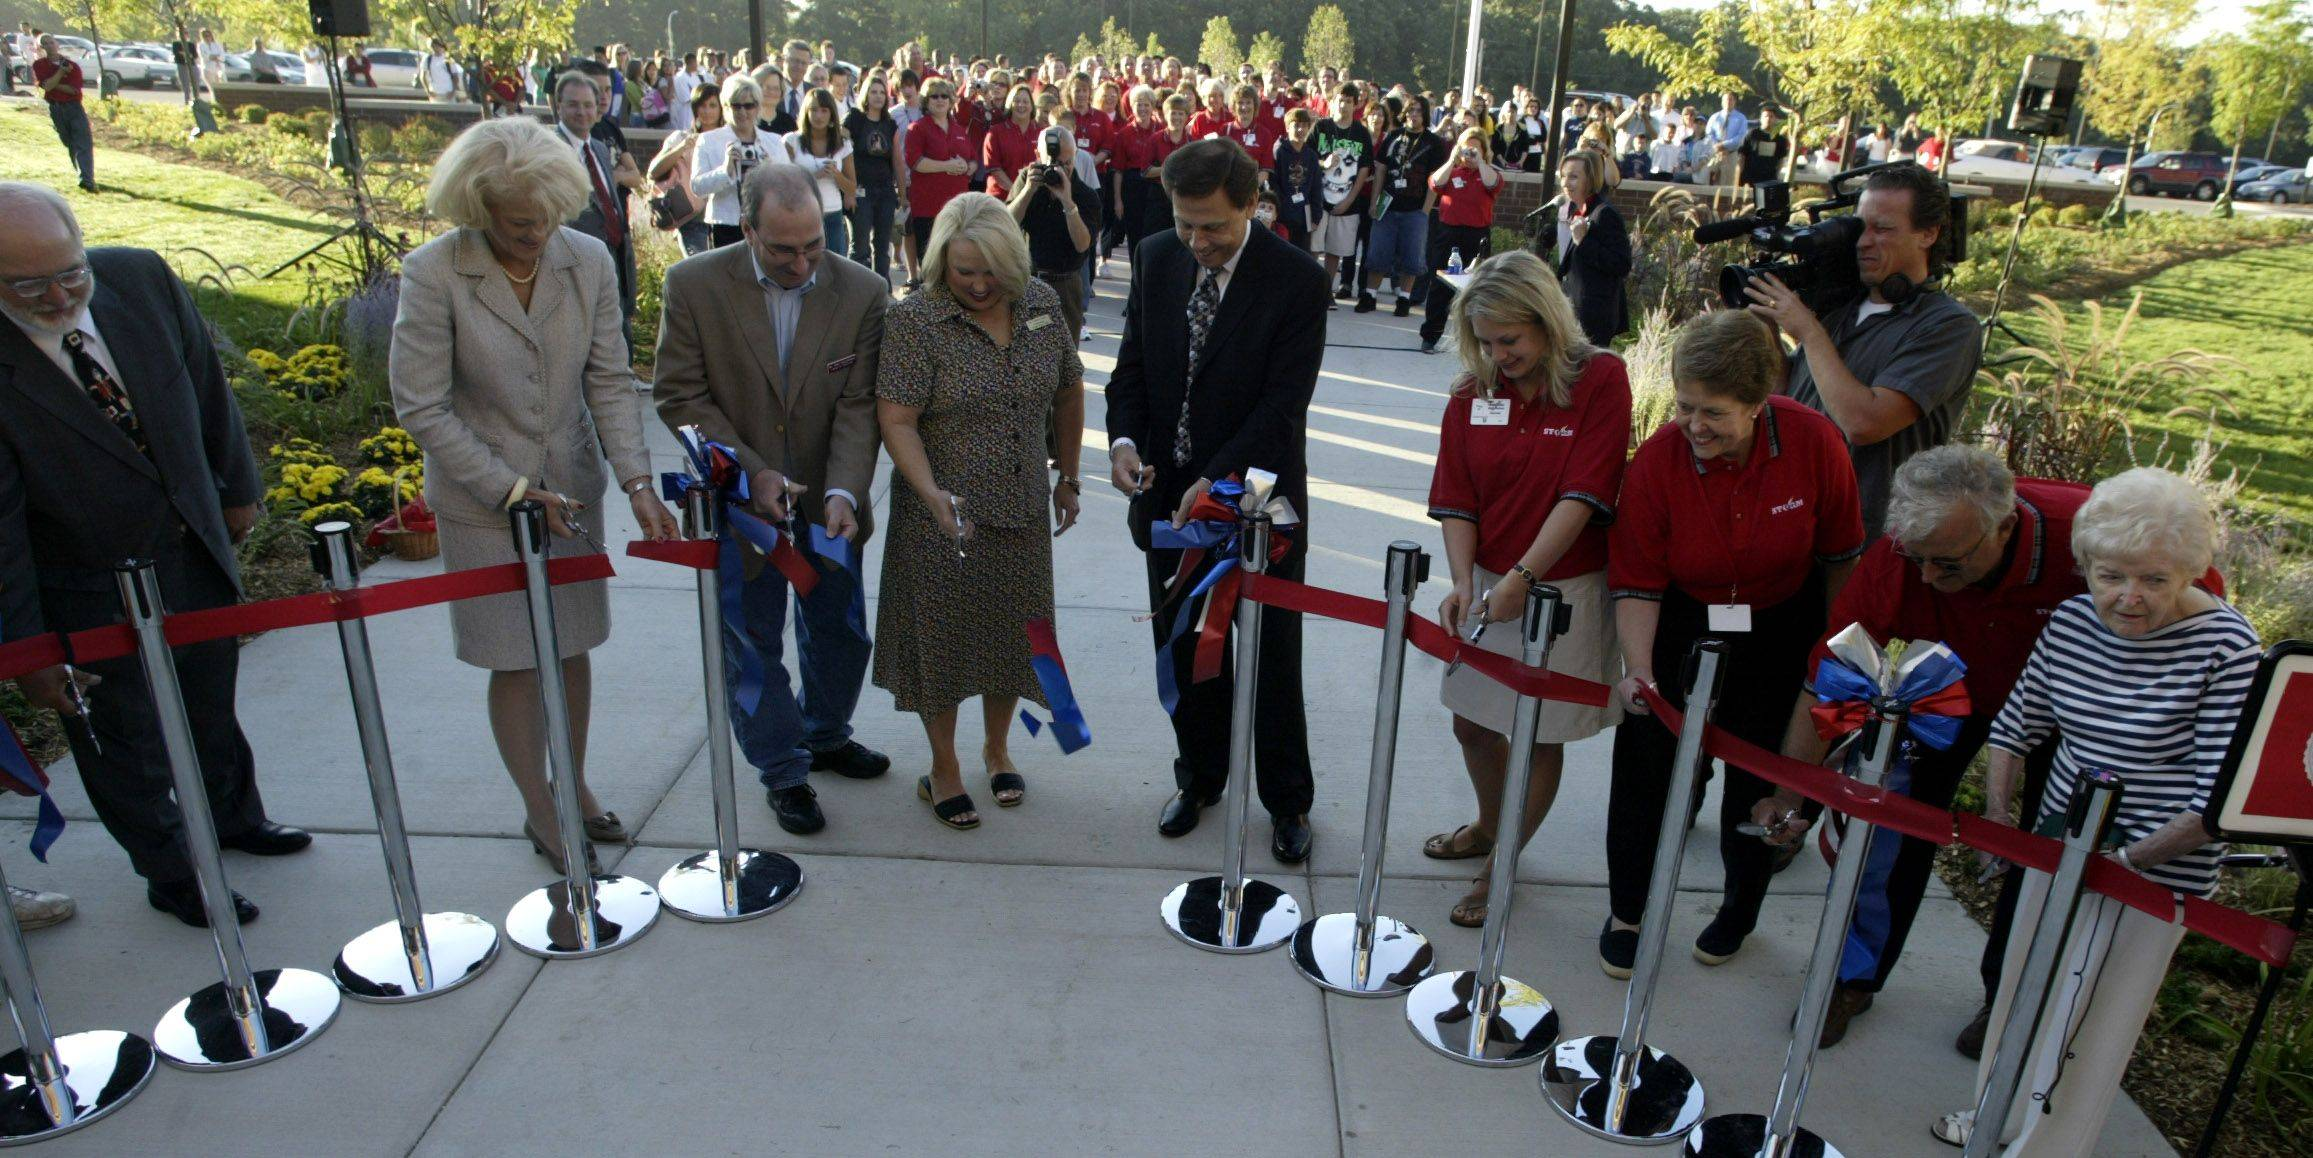 School and district officials, including then-Superintendent Connie Neale, center, cut the ribbon to start the first school day at the new South Elgin High School in 2005.